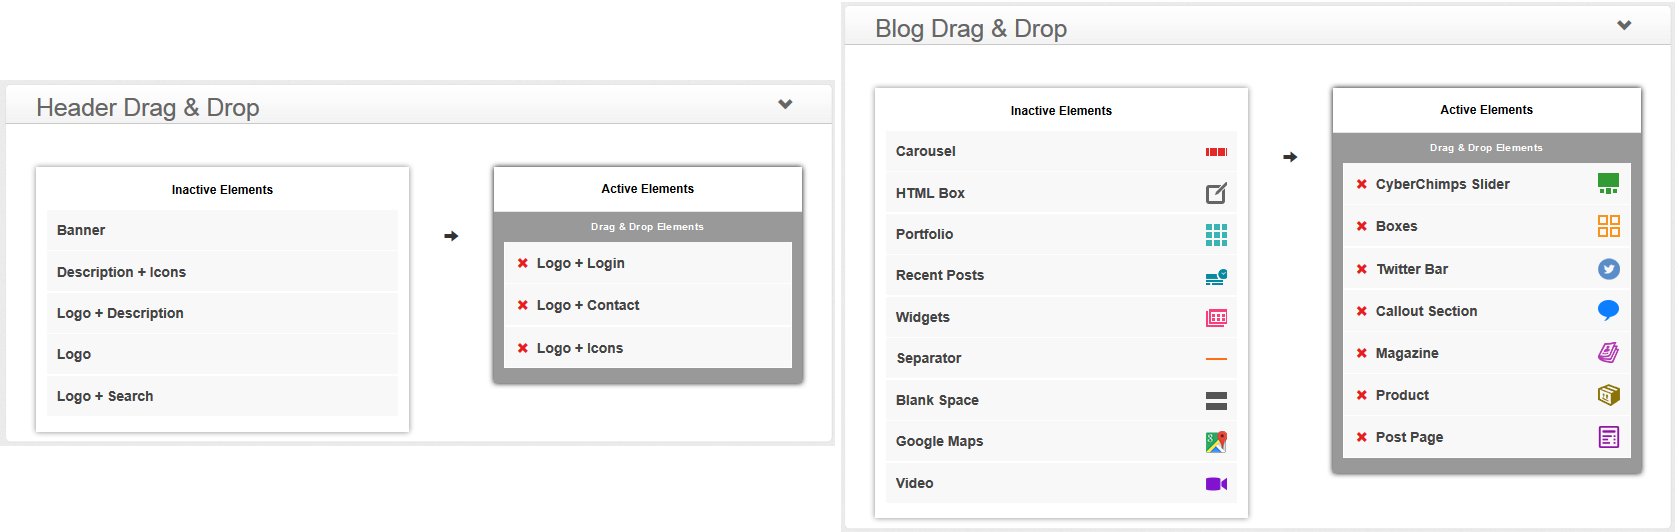 iFeature Pro - Drag & Drop Elements